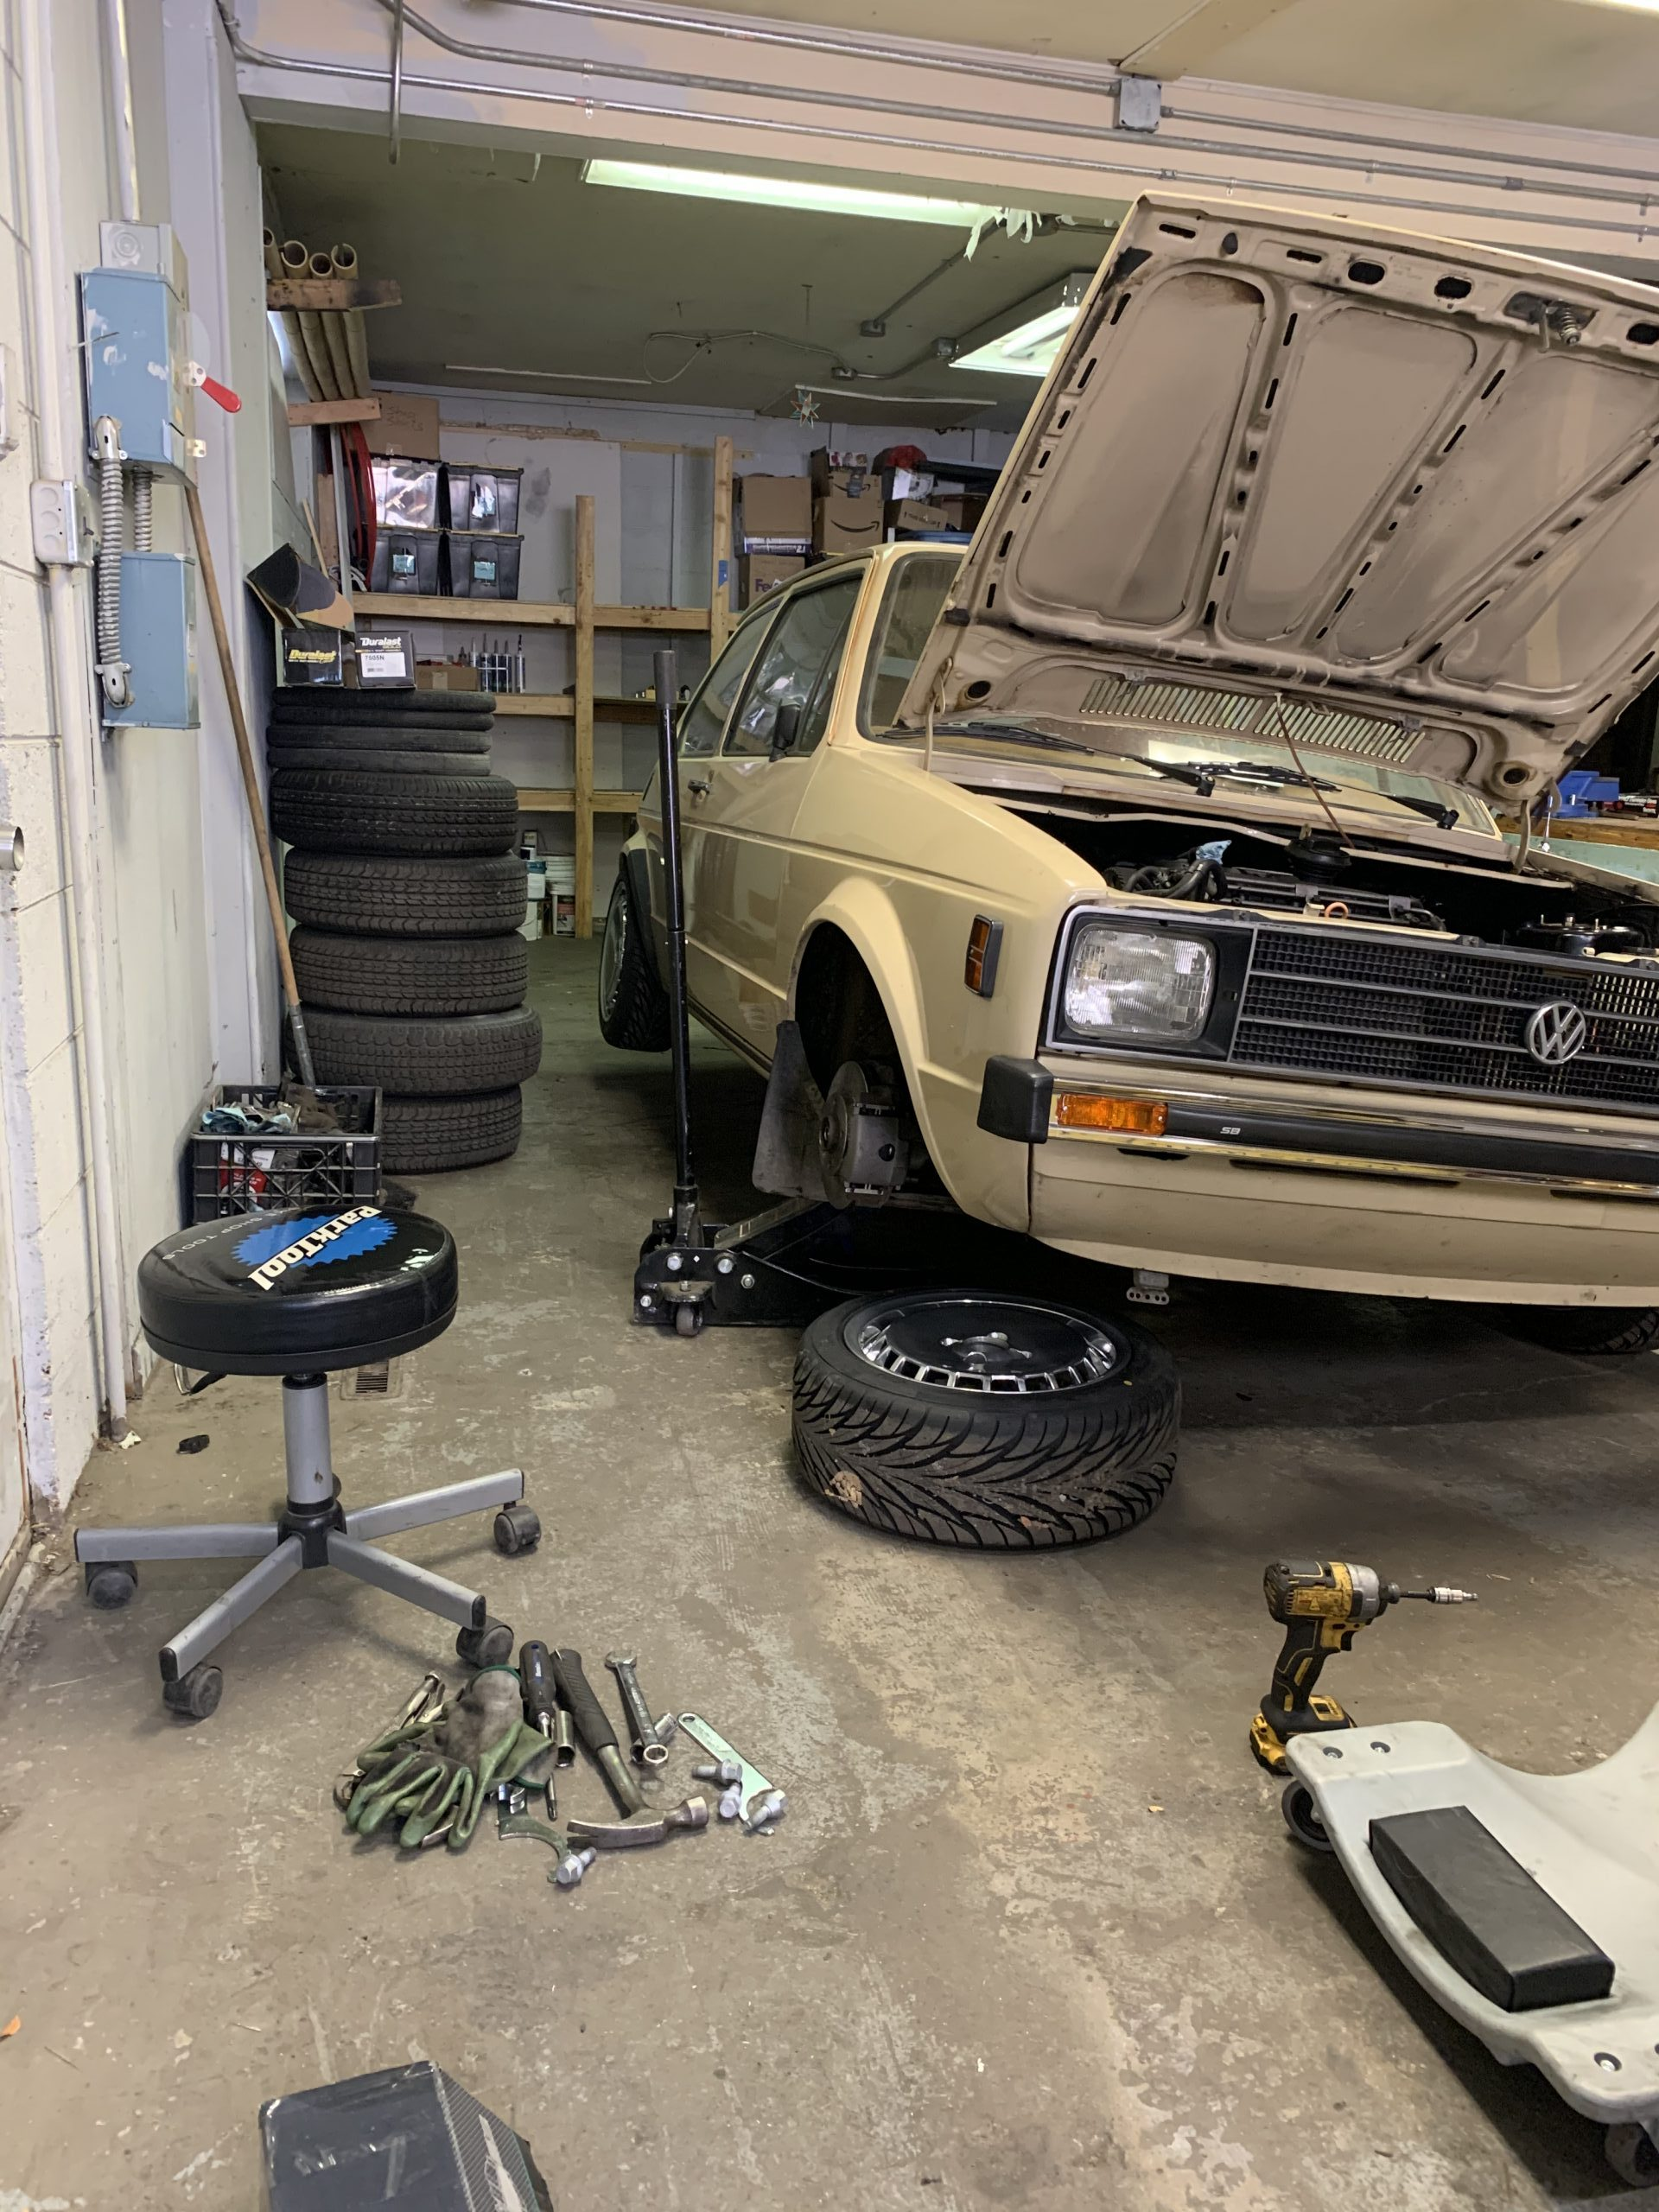 1980 VW Rabbit TDI swap Sep 27, 2 49 38 PM